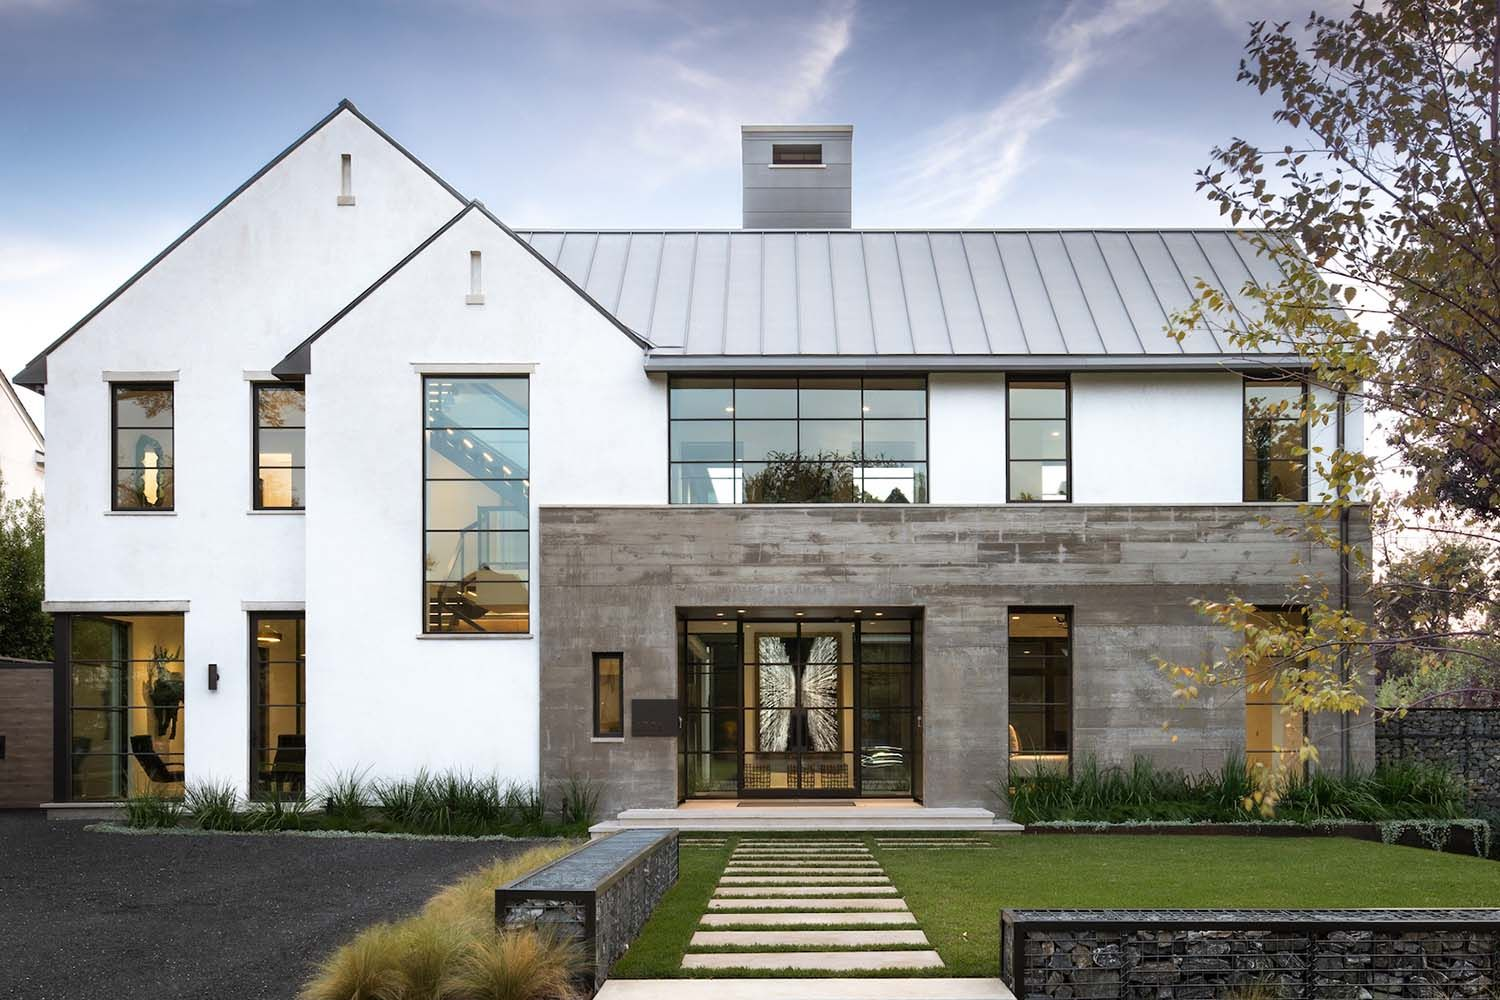 Outstanding contemporary home in Texas with inspiring design details #exteriordesign